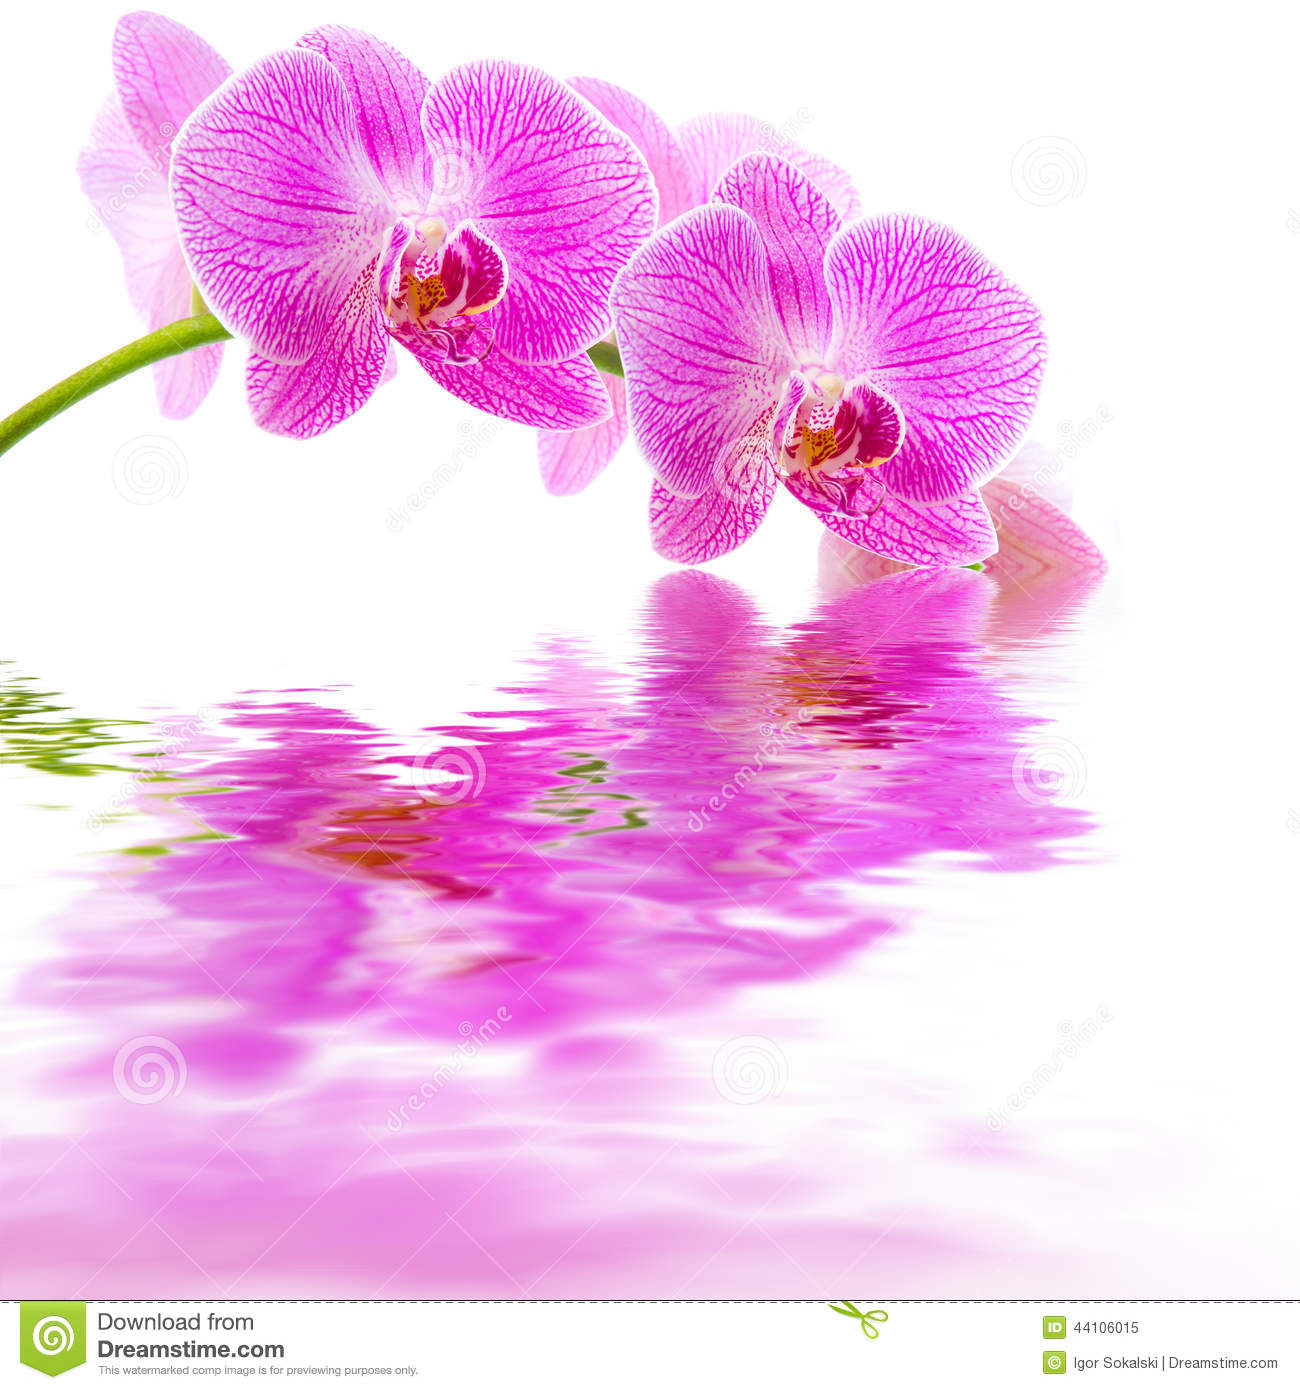 Habrumalas orchids in water wallpaper images - Orchids In Water Wallpaper